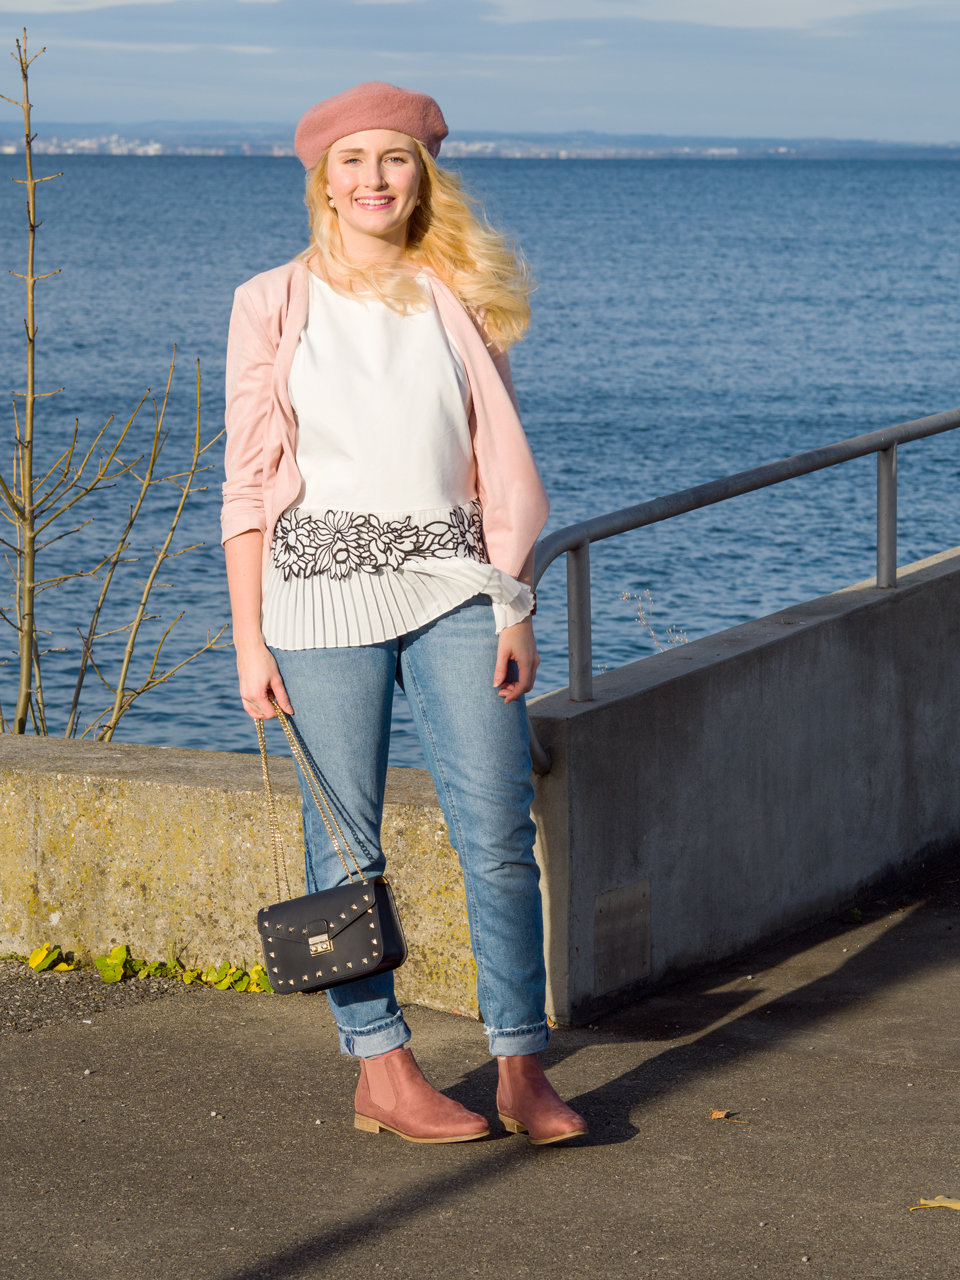 Alltagsoutfit mit Rosa Chelsea Boots